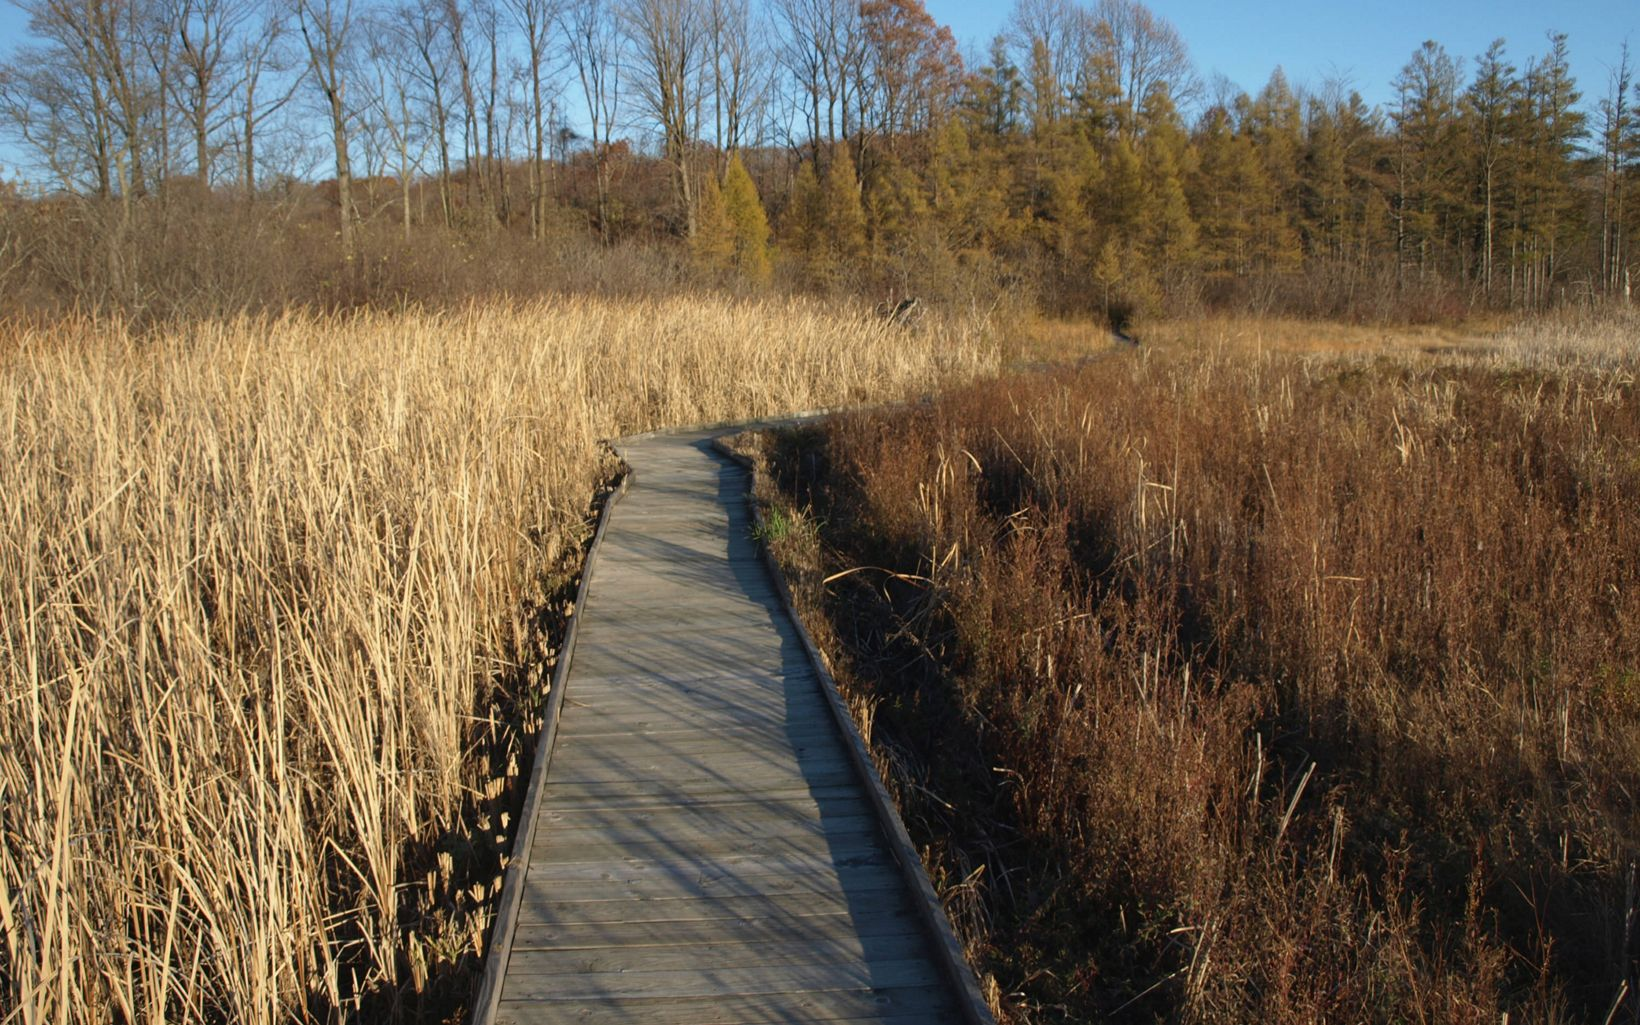 Grasses and native plants surround the boardwalk as it winds through the wetland at J. Arthur Herrick Fen Preserve before it enters the forest.